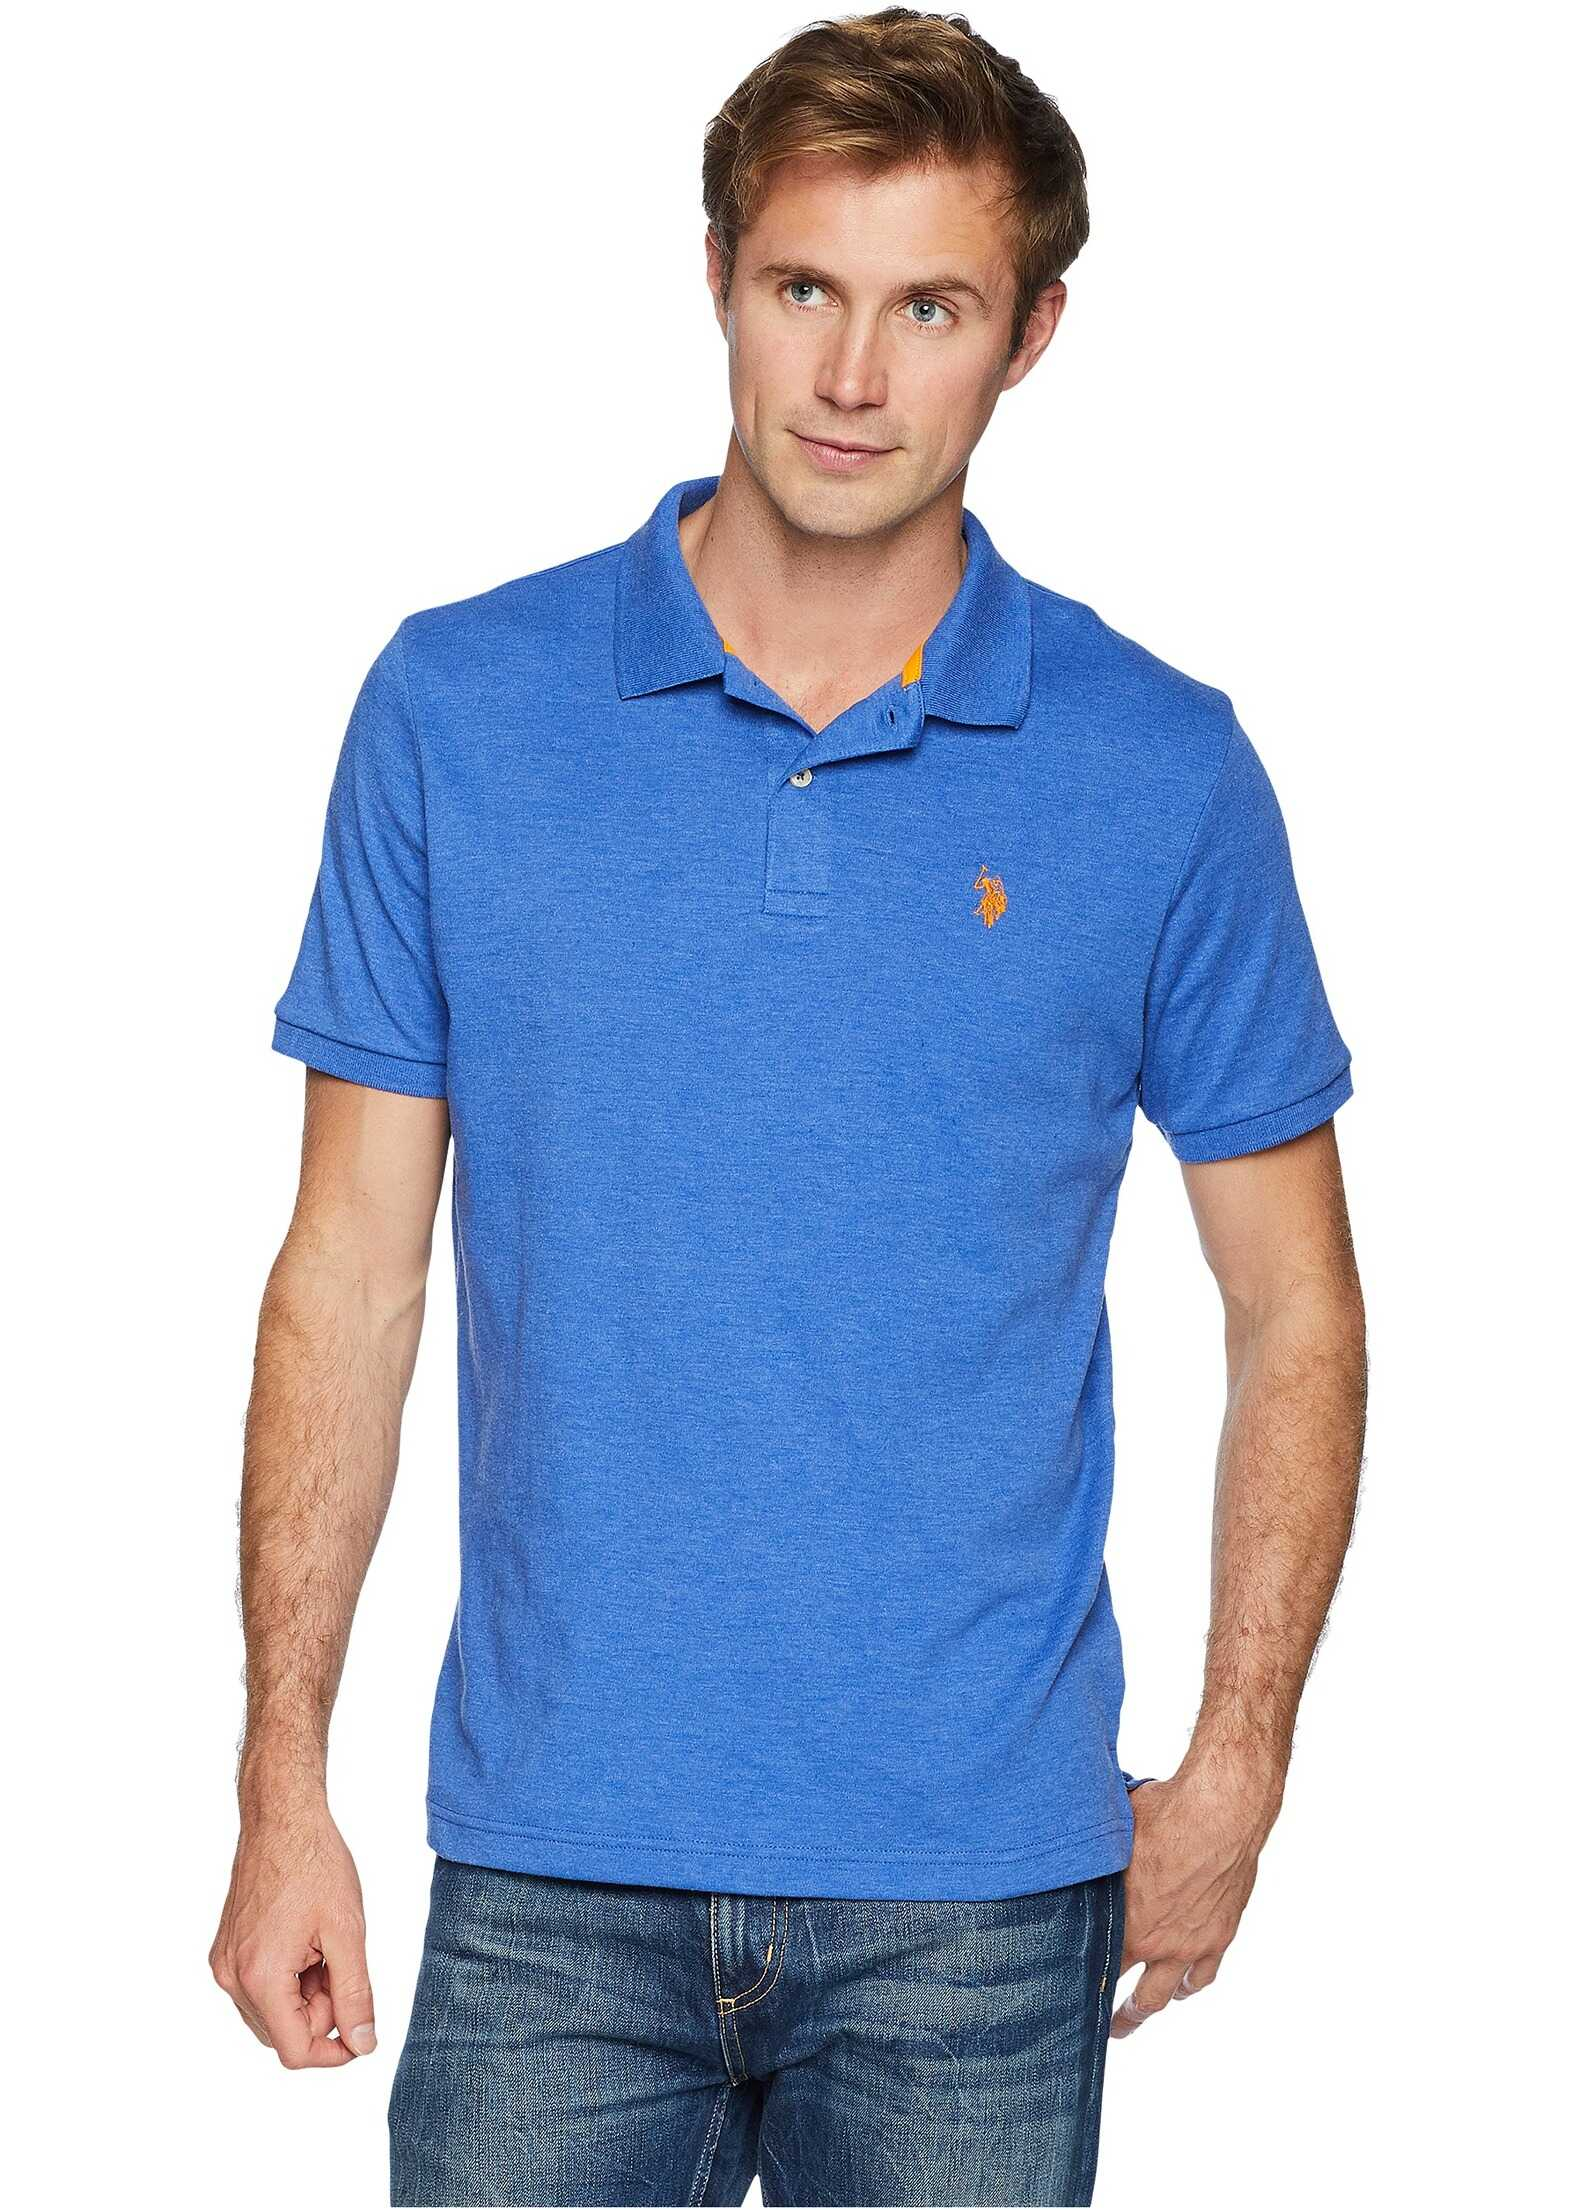 U.S. POLO ASSN. Solid Interlock Polo Cobalt Heather